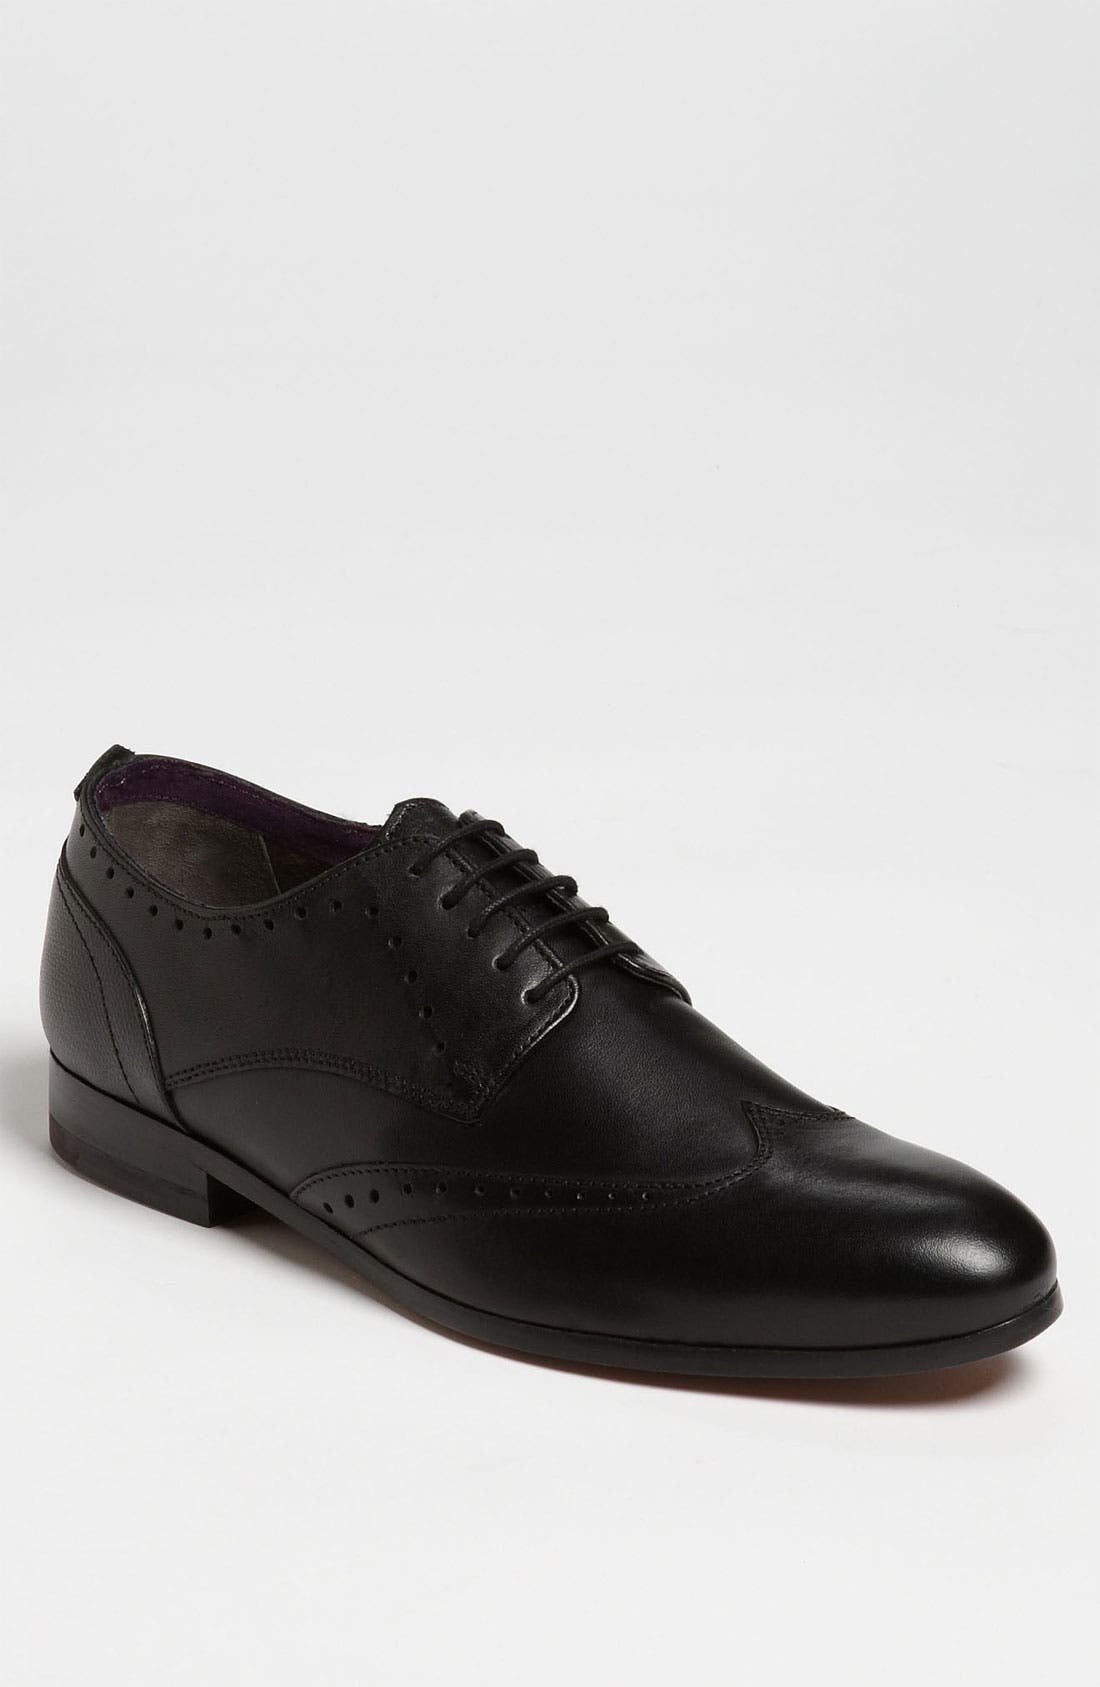 Alternate Image 1 Selected - Ted Baker London 'Carpen' Wingtip